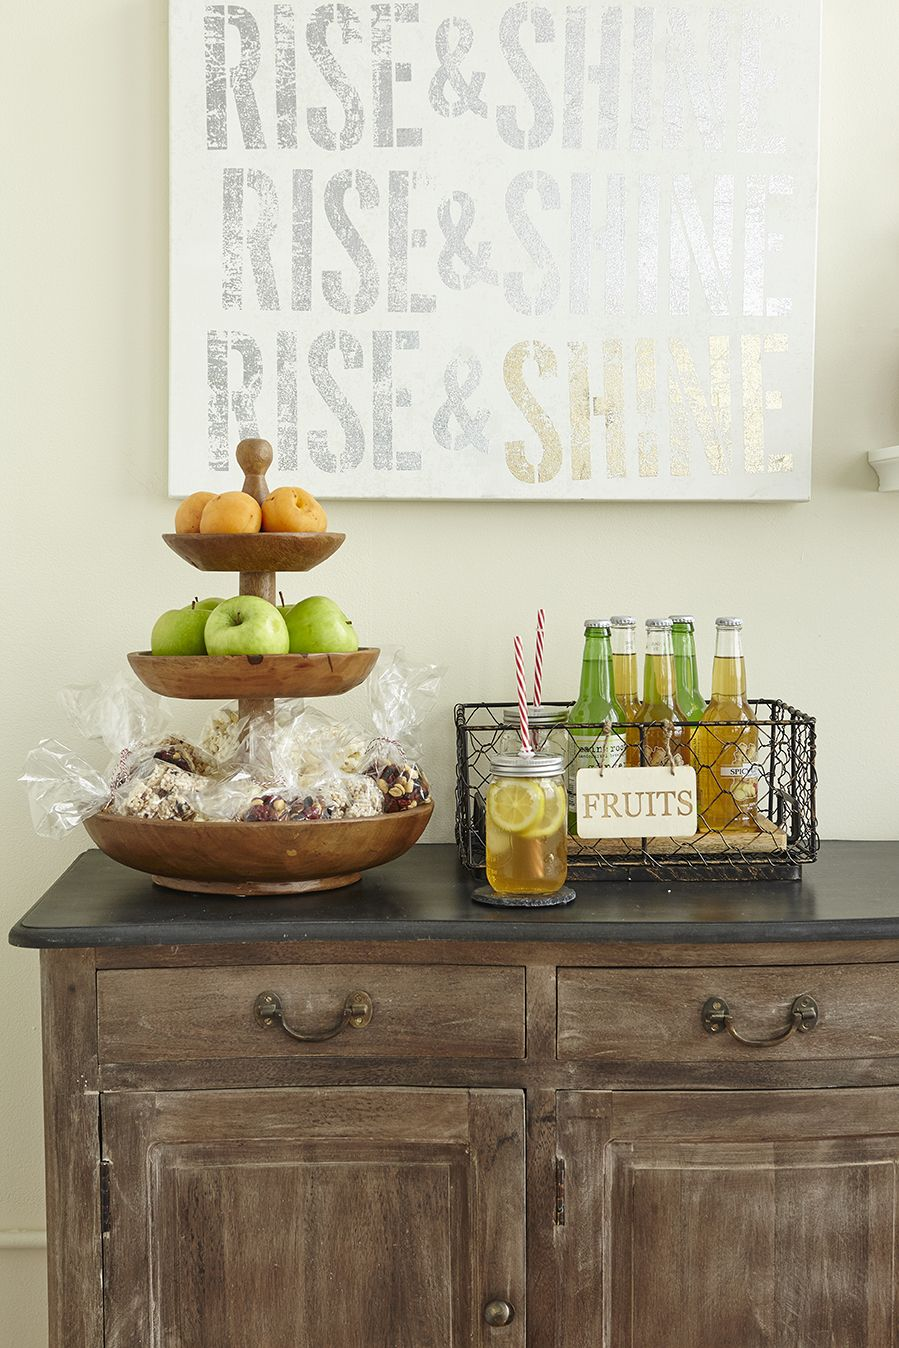 Room Reveals from the HomeGoods photo shoot Home goods